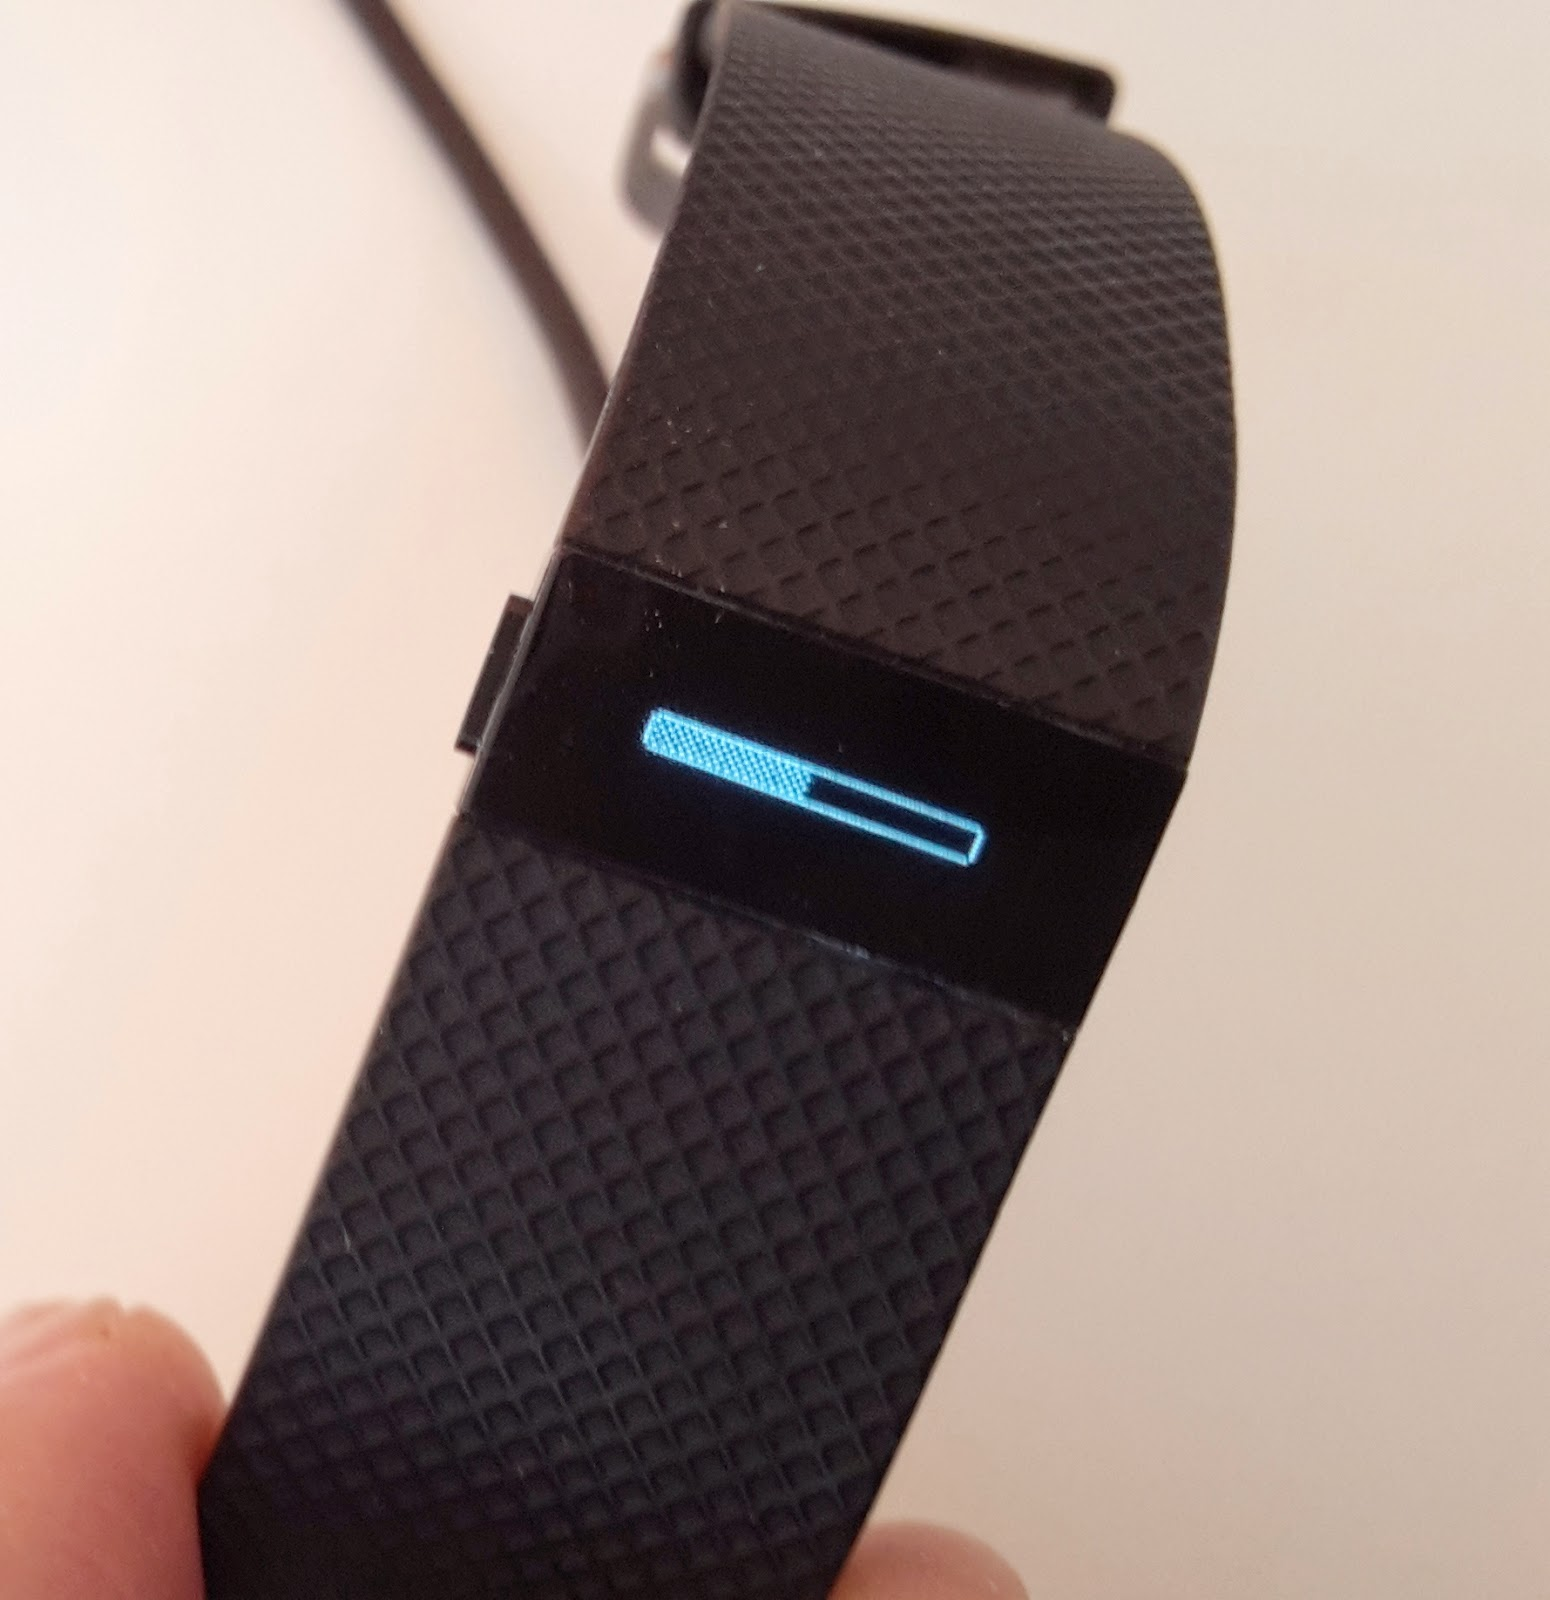 Fitbit charge fitbit download - bd